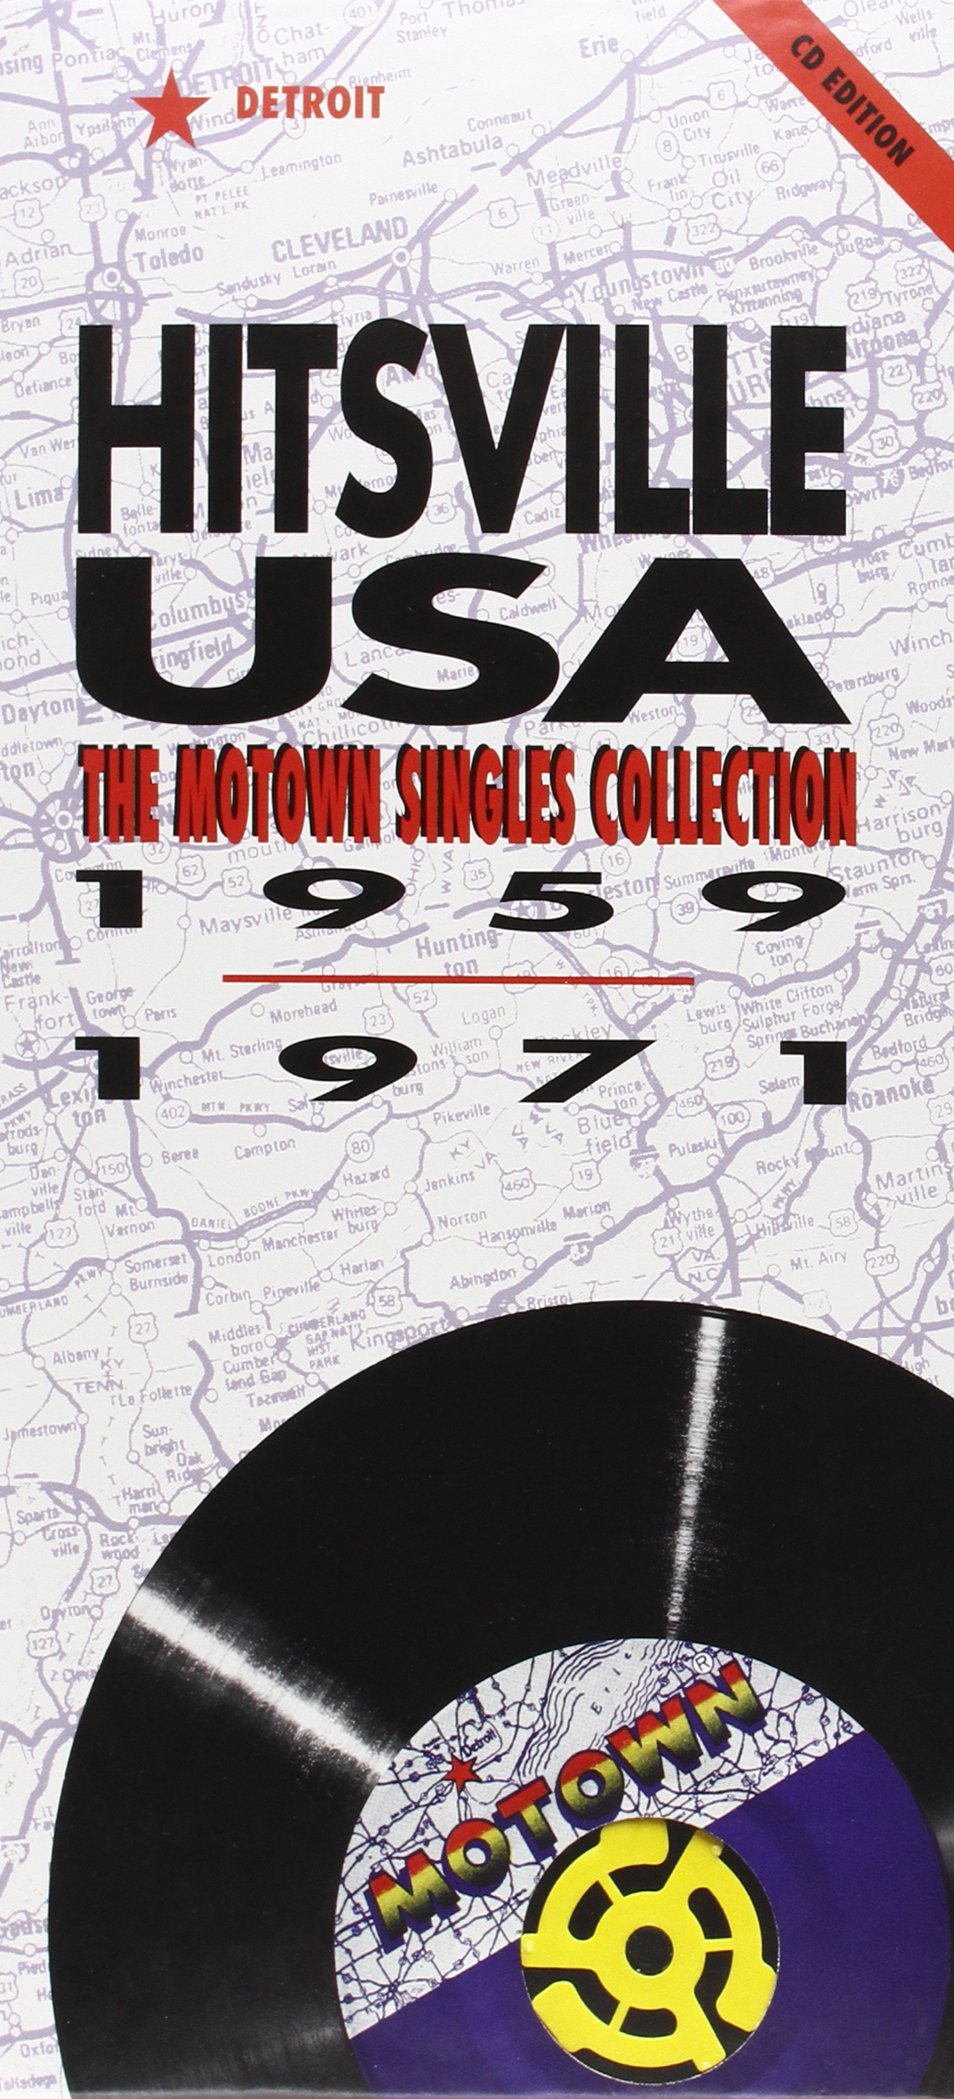 Hitsville USA: The Motown Singles Collection 1959-1971 by Motown Records